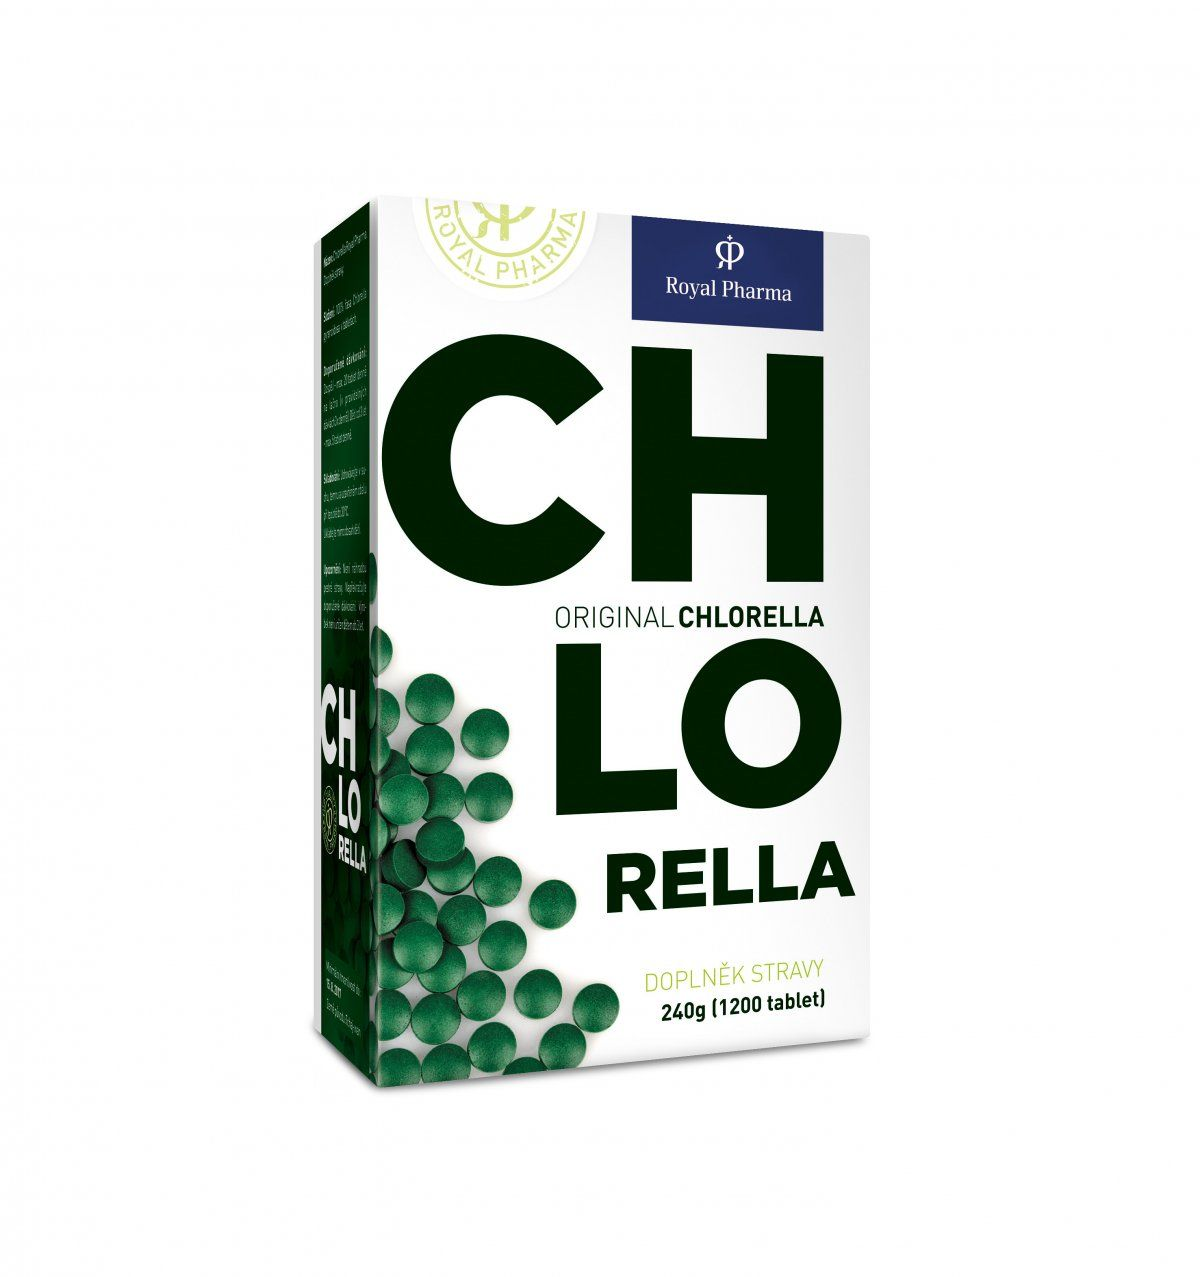 Chlorella Royal Pharma Počet tablet: 1200 tablet